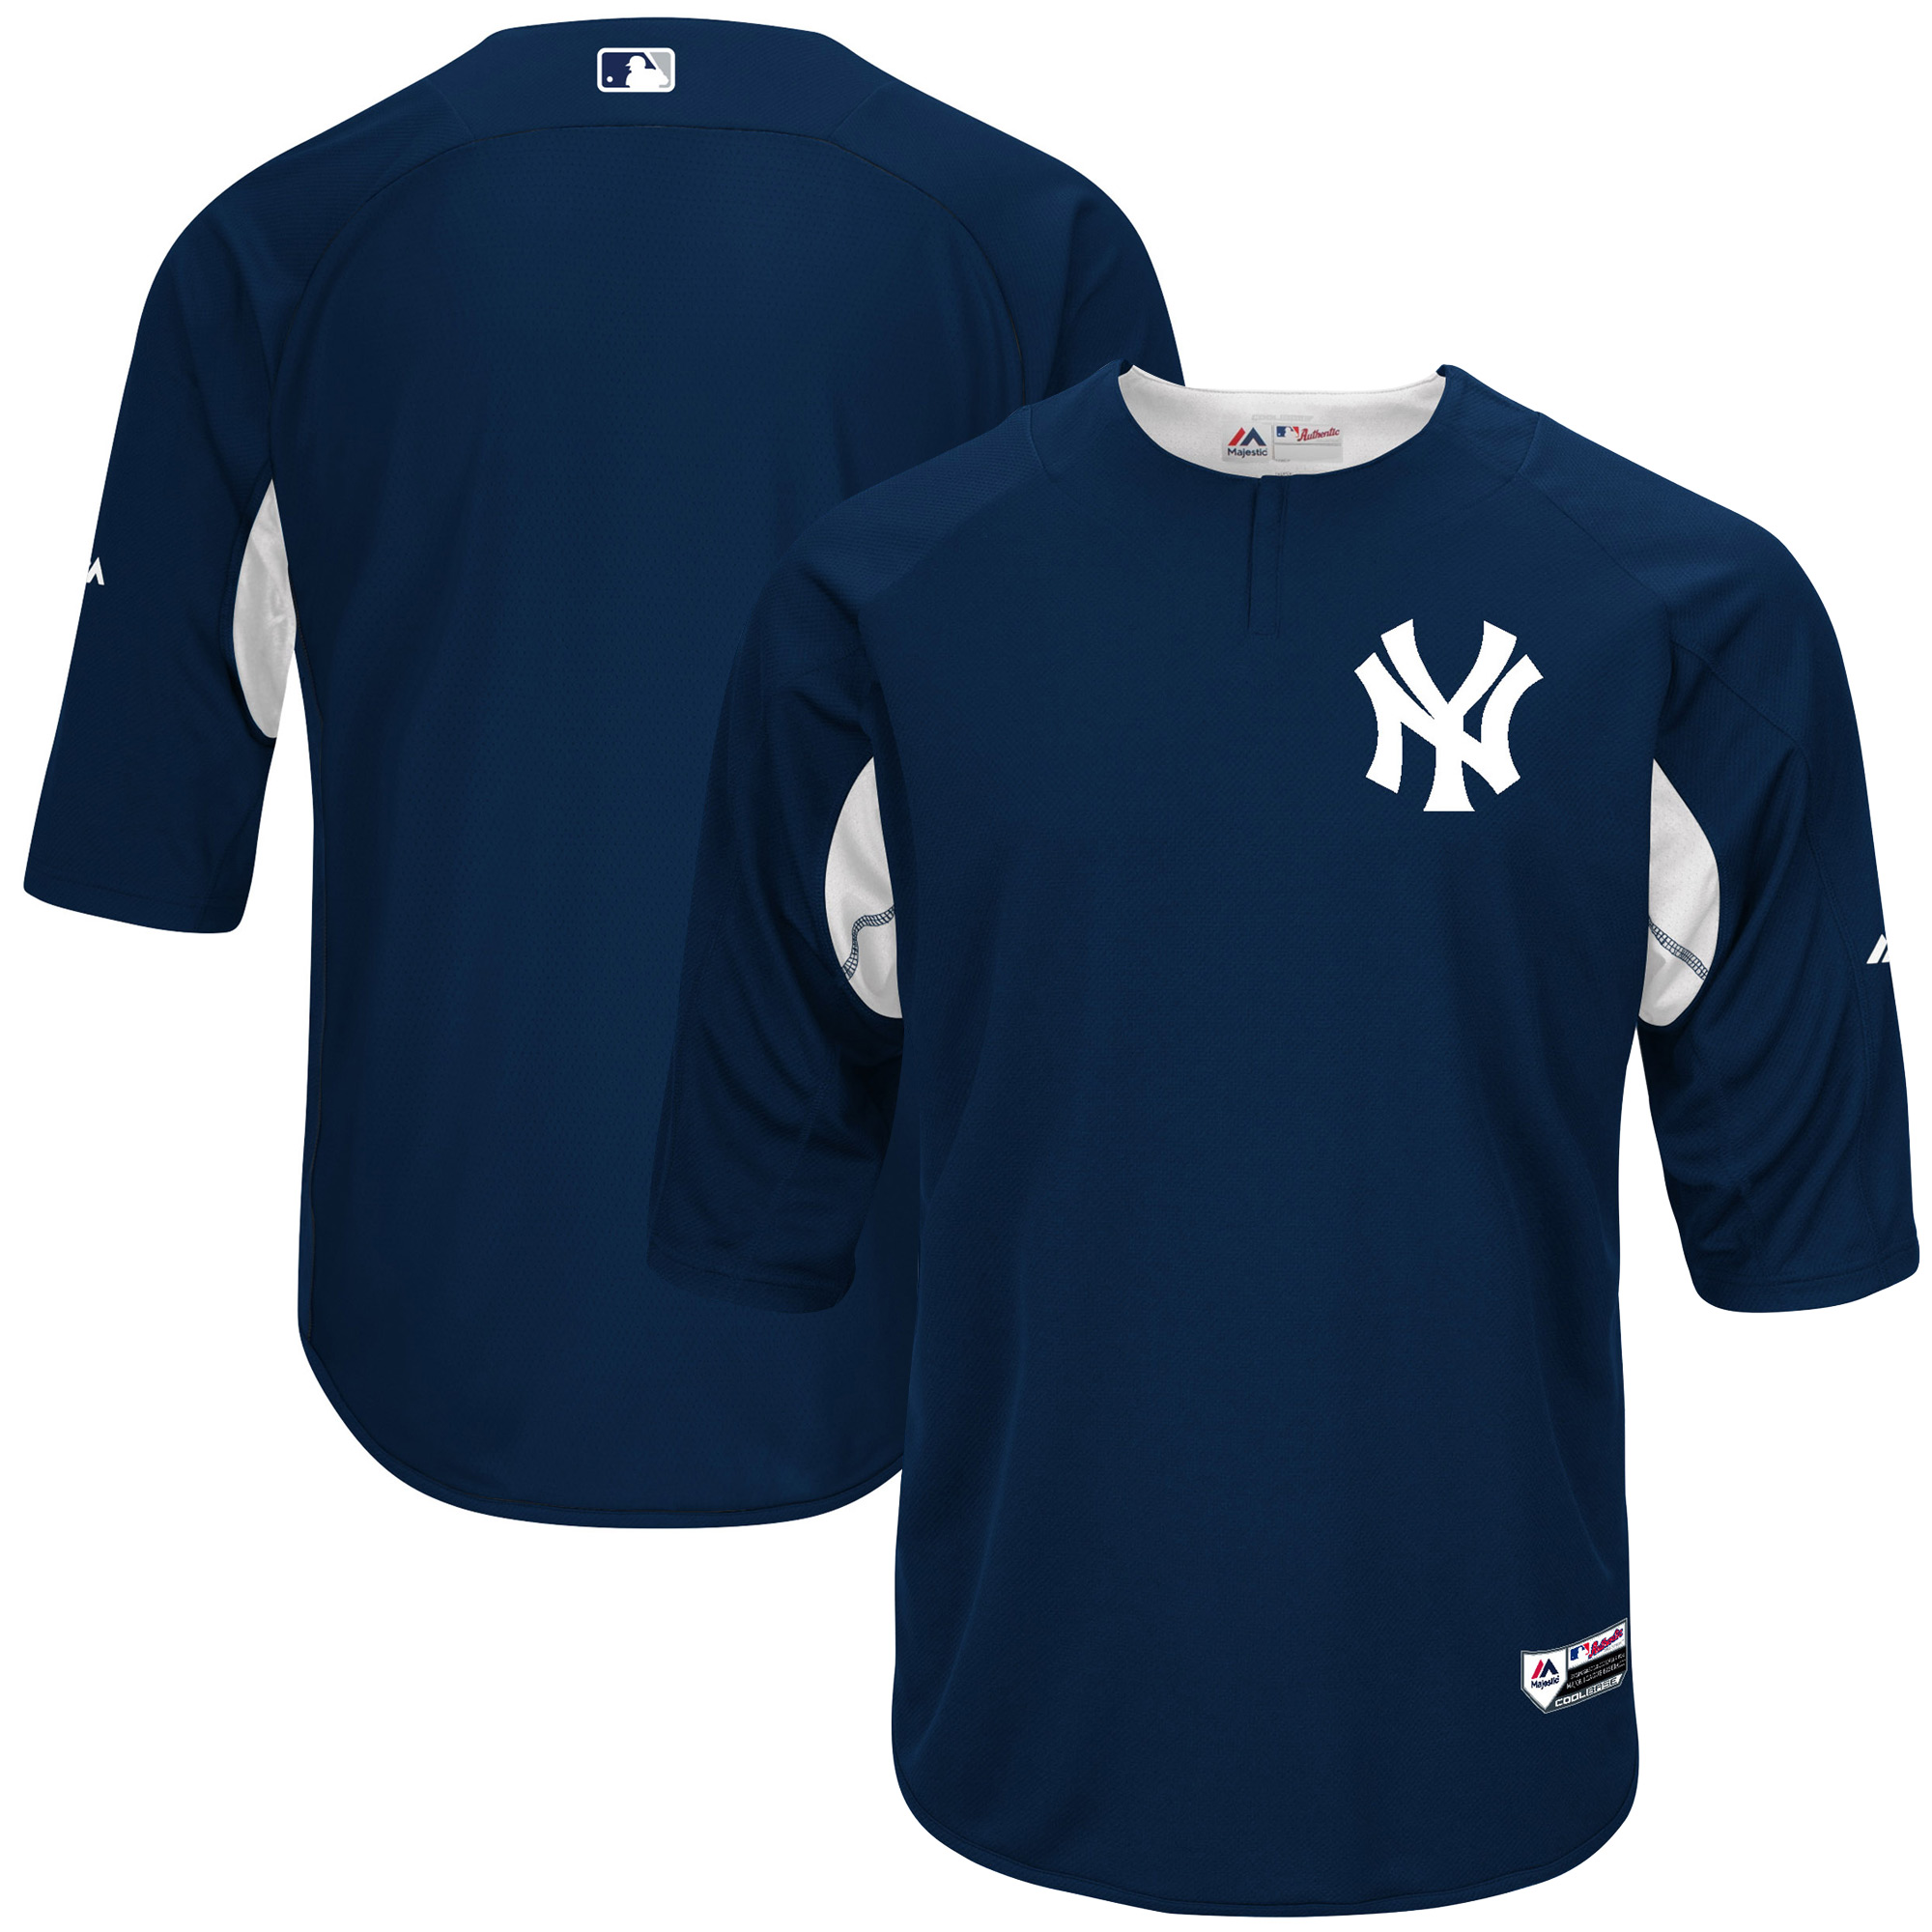 New York Yankees Majestic Authentic Collection On-Field 3/4-Sleeve Batting Practice Jersey - Navy/White